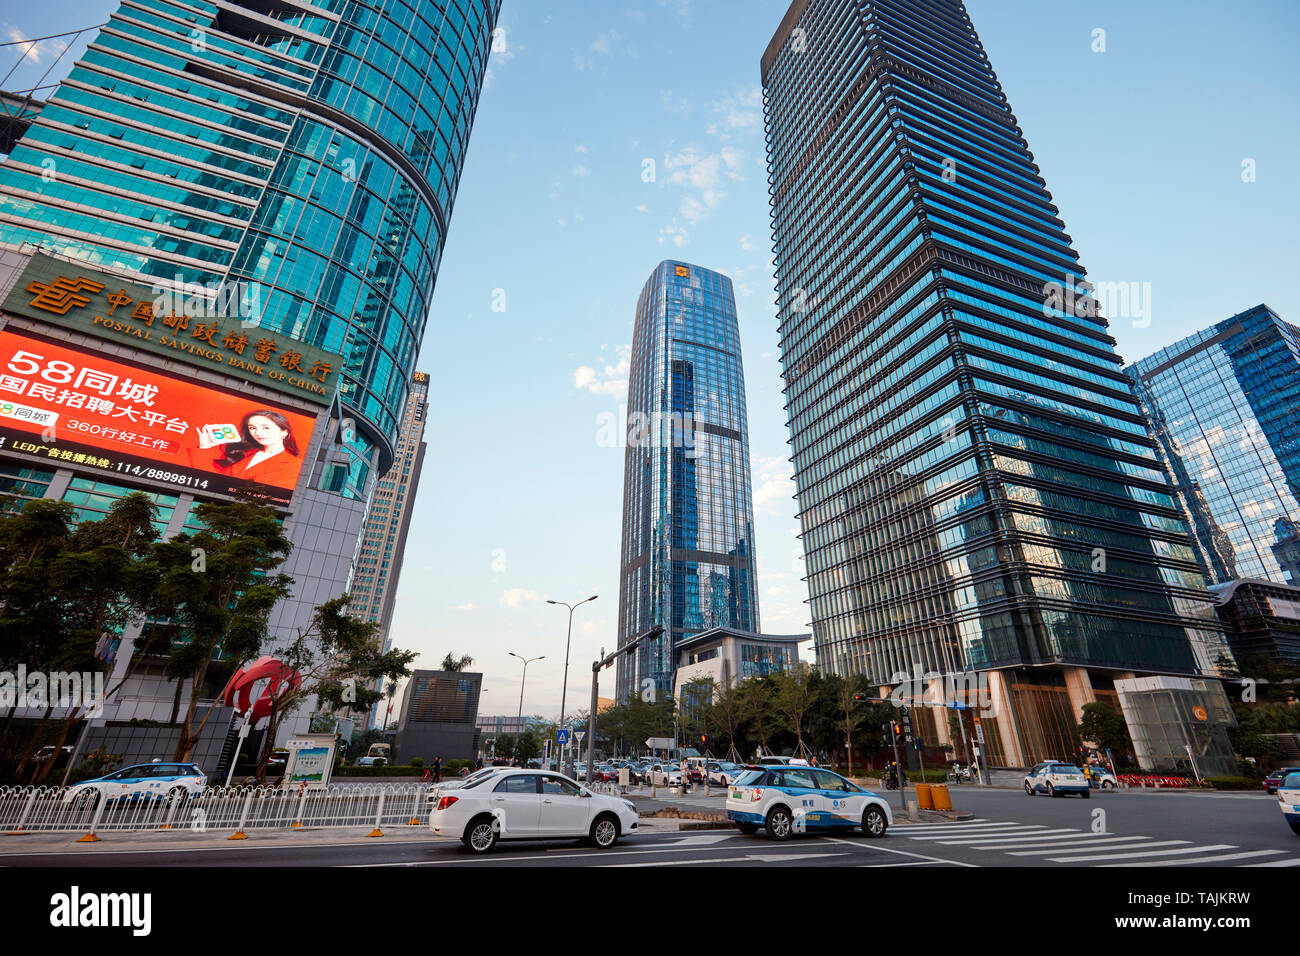 Skyscrapers in Futian Central Business District. Shenzhen, Guangdong Province, China. - Stock Image